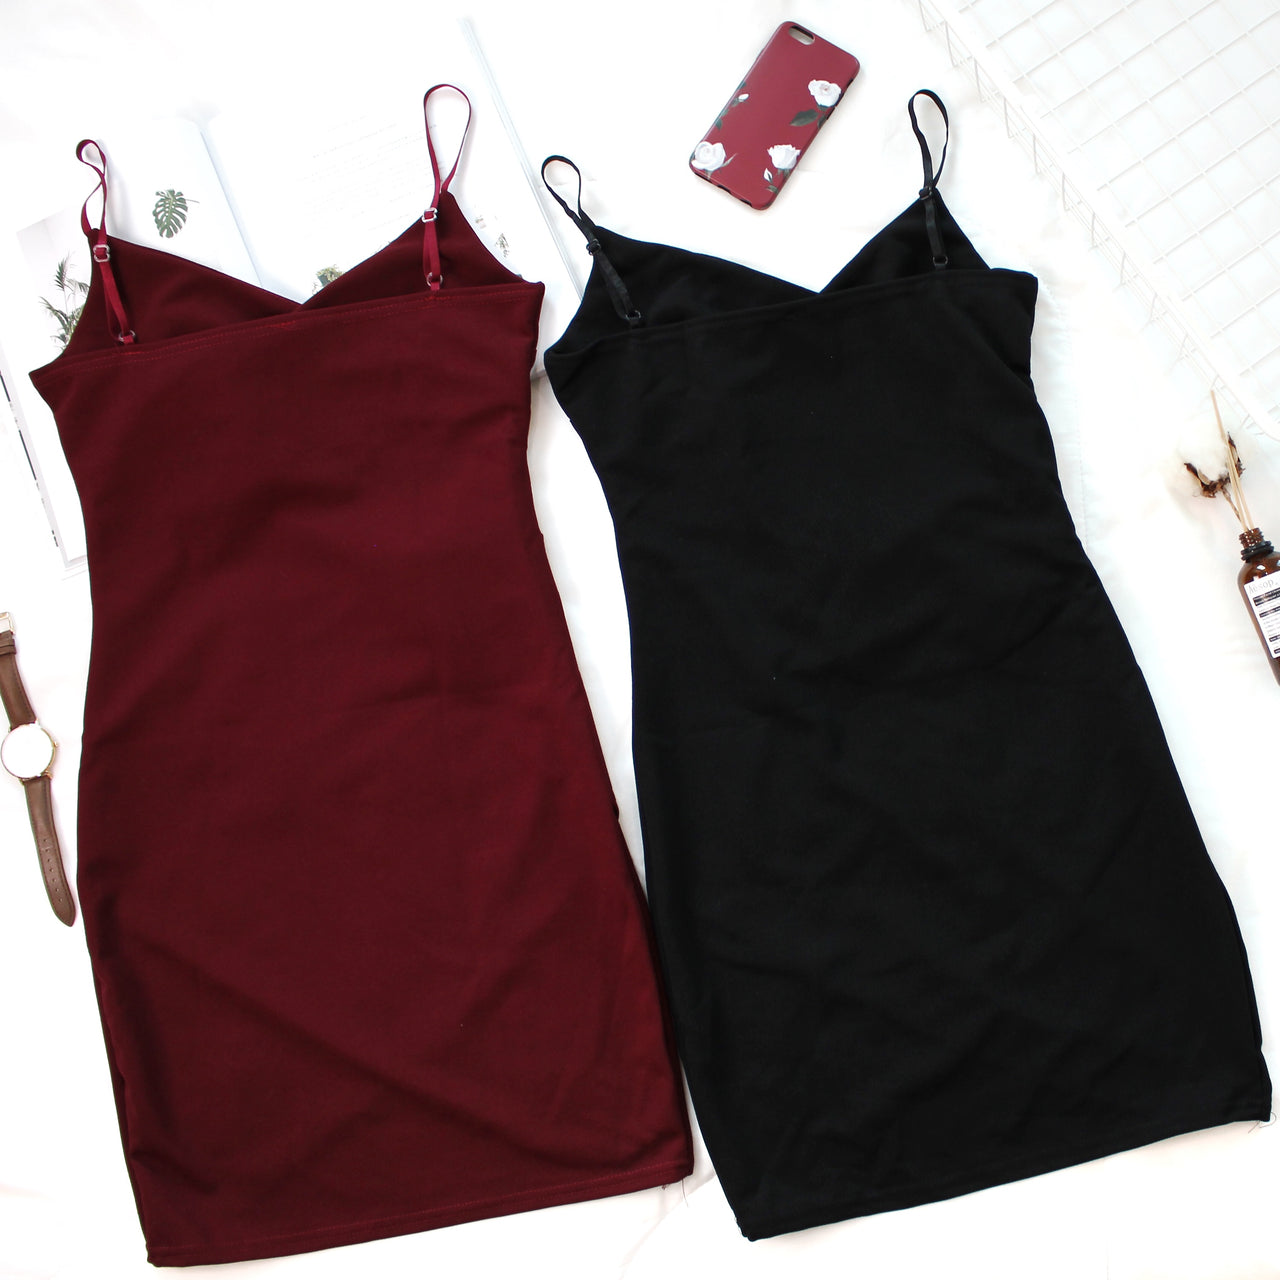 Deep V Bodycon Dress v2